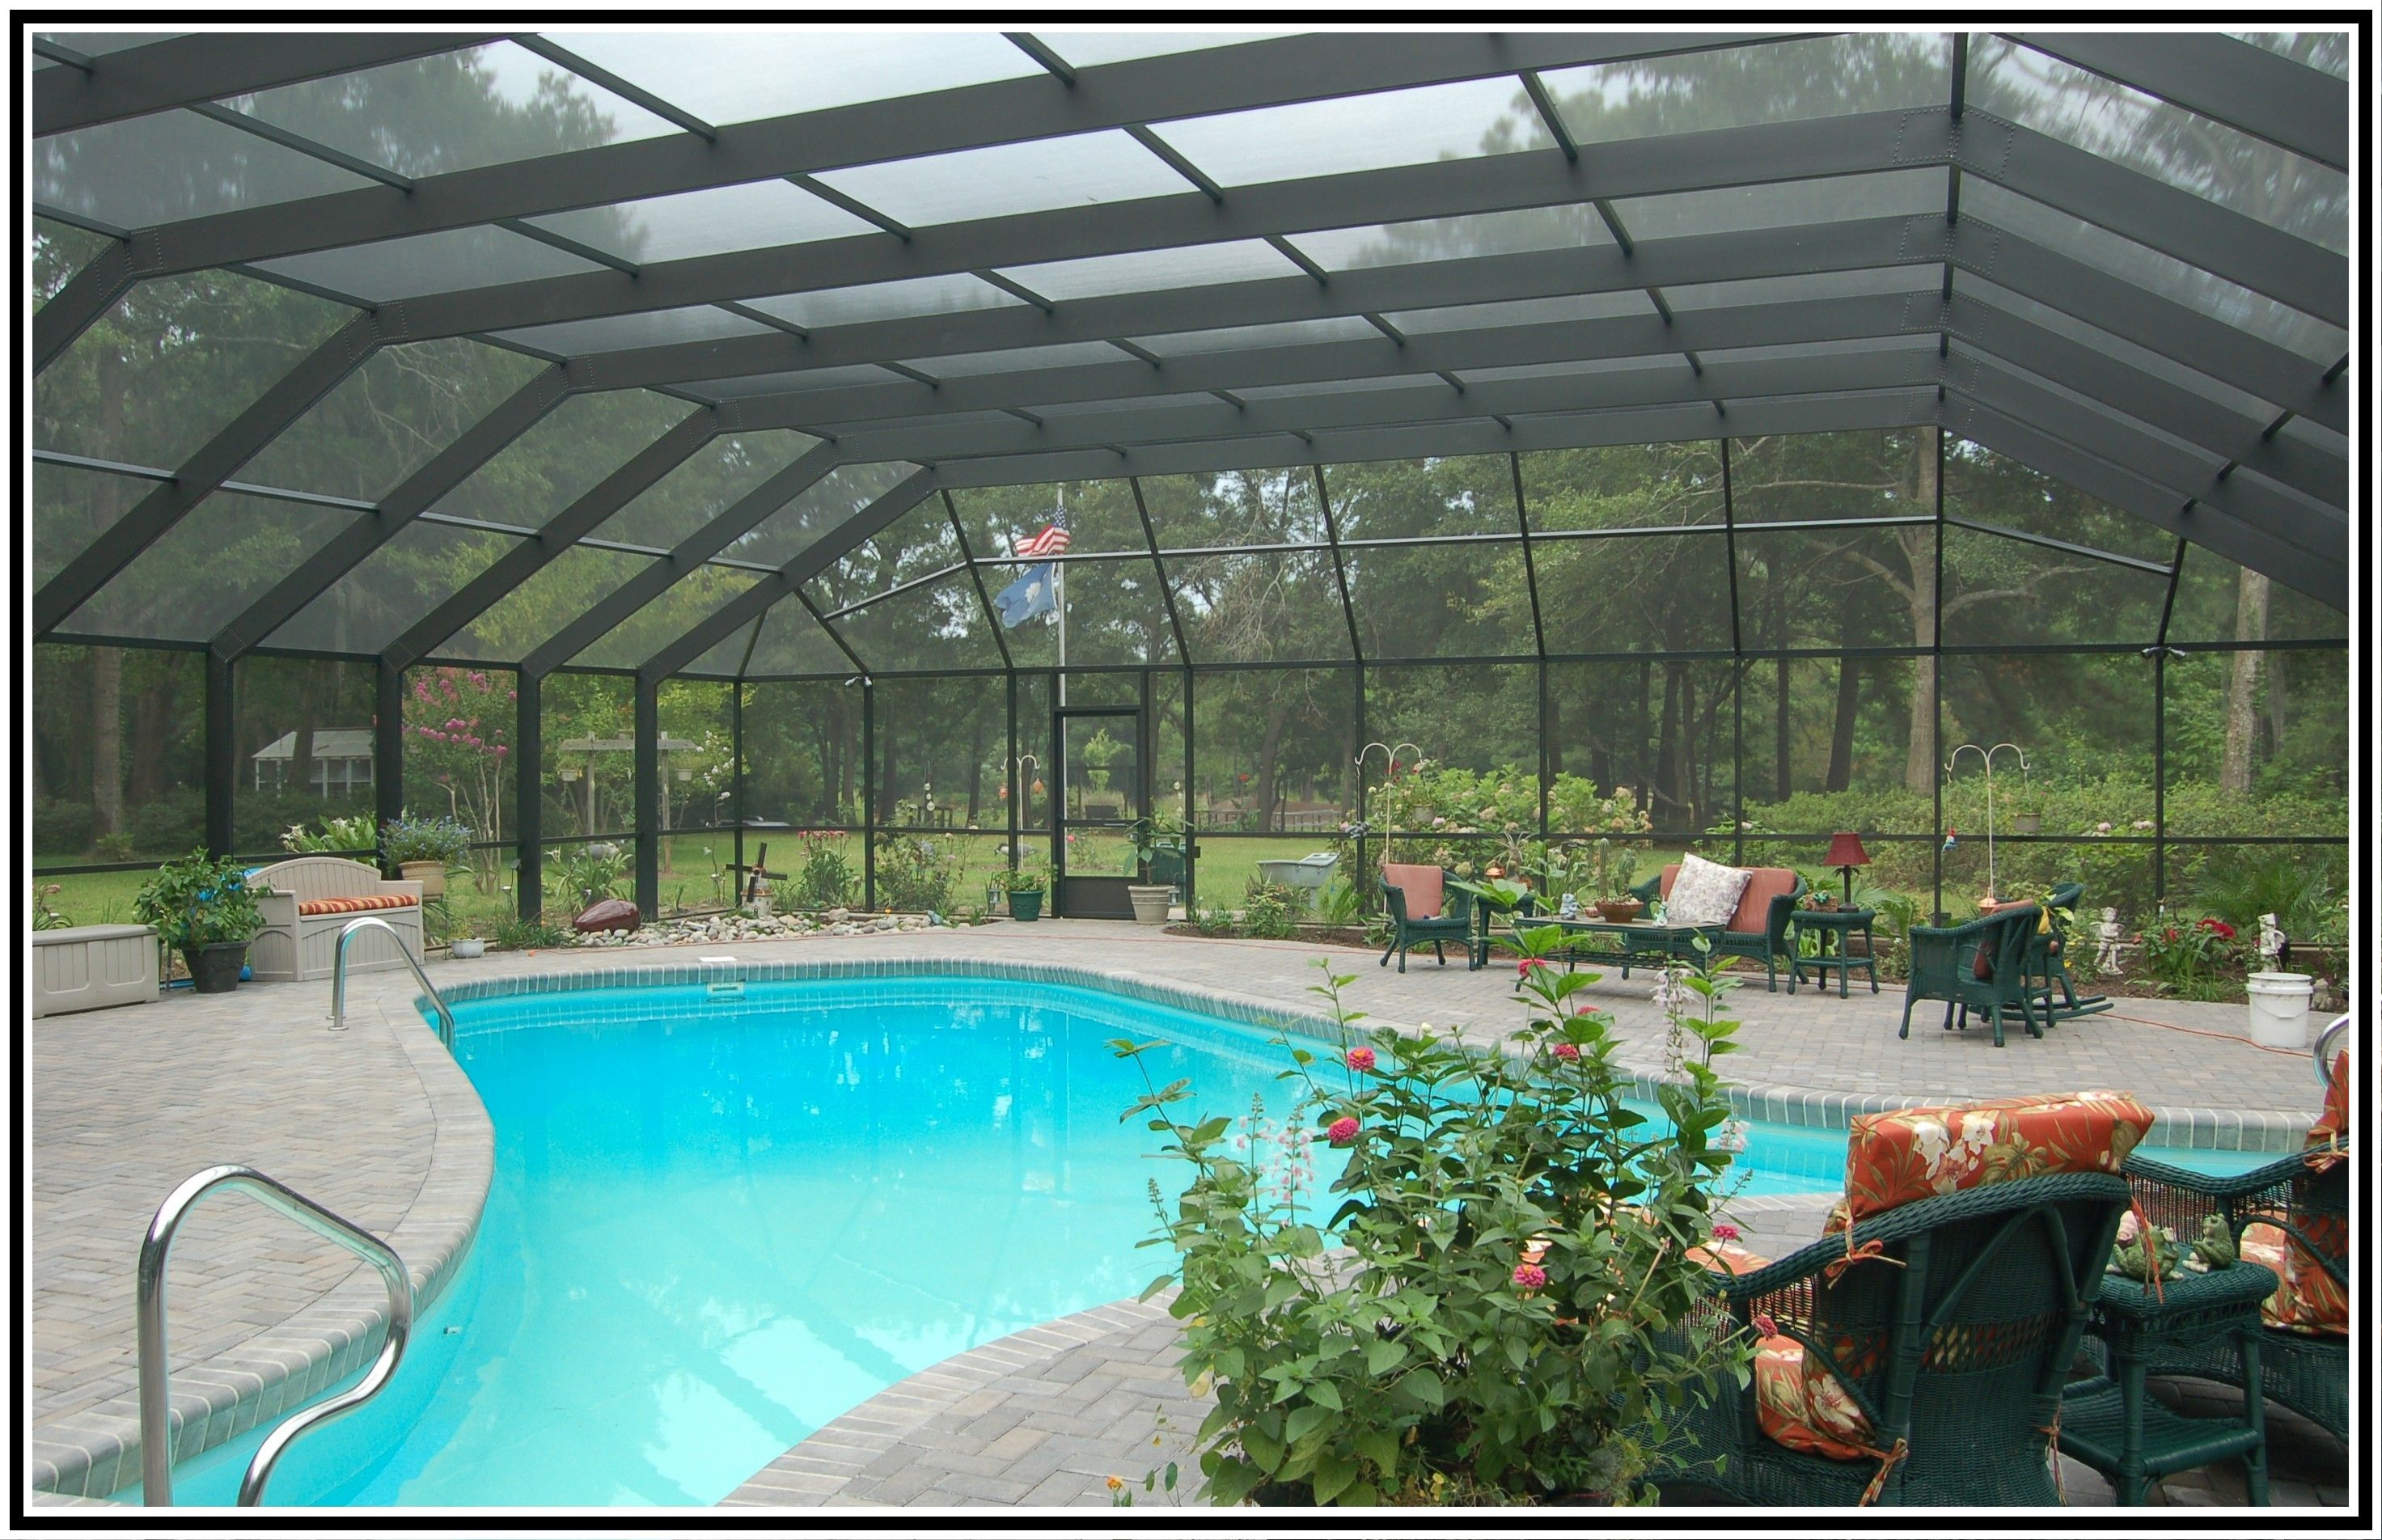 Pool enclosure designs pool enclosures and screen rooms for Swimming pool enclosures cost